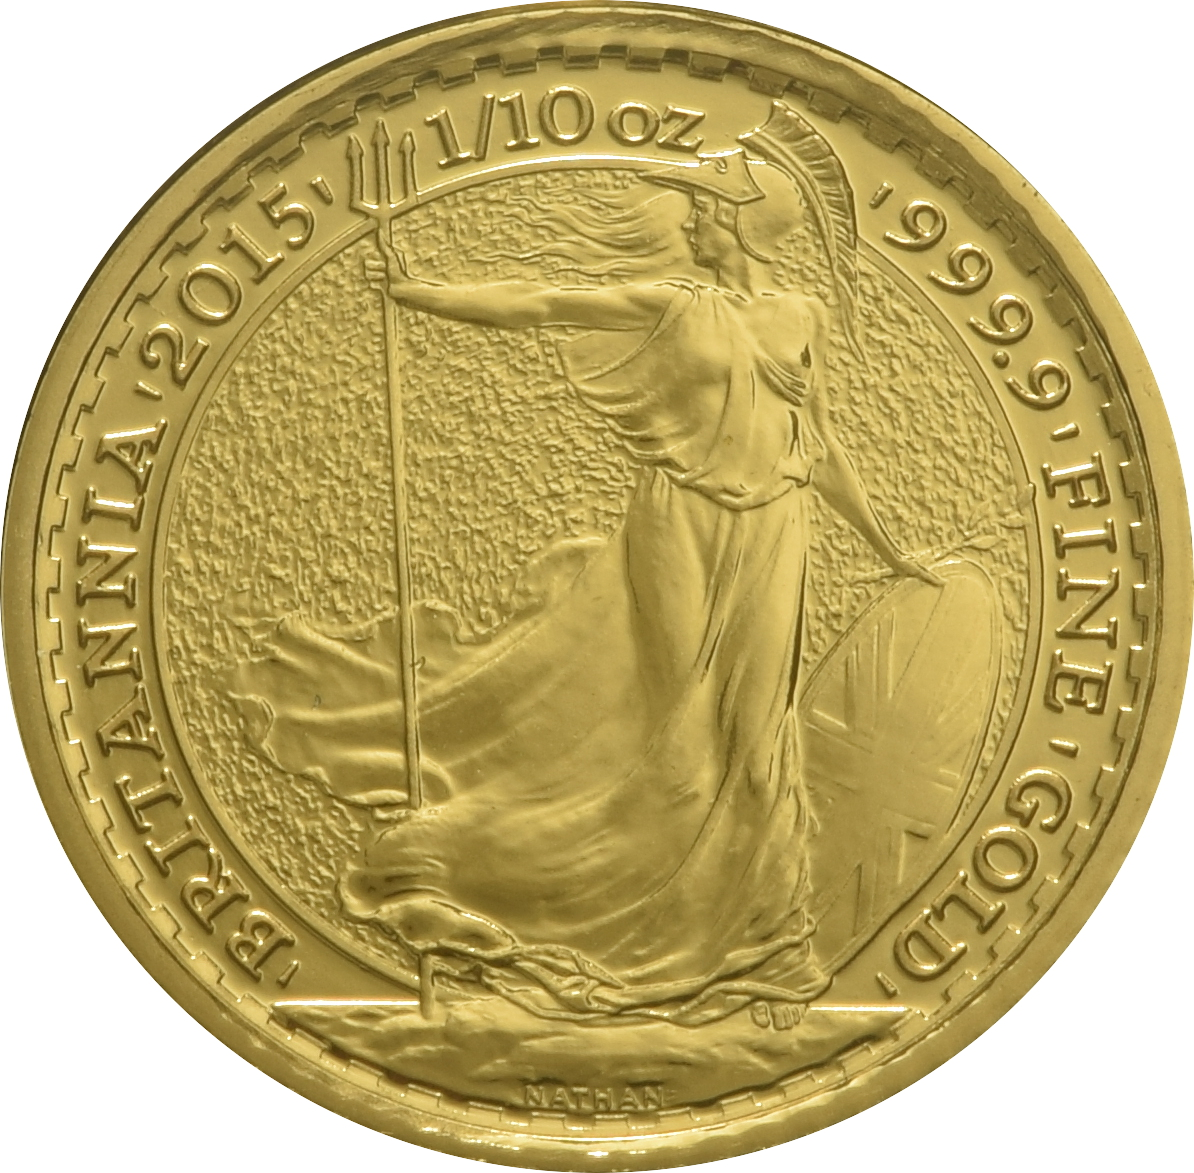 2015 Tenth Ounce Gold Britannia